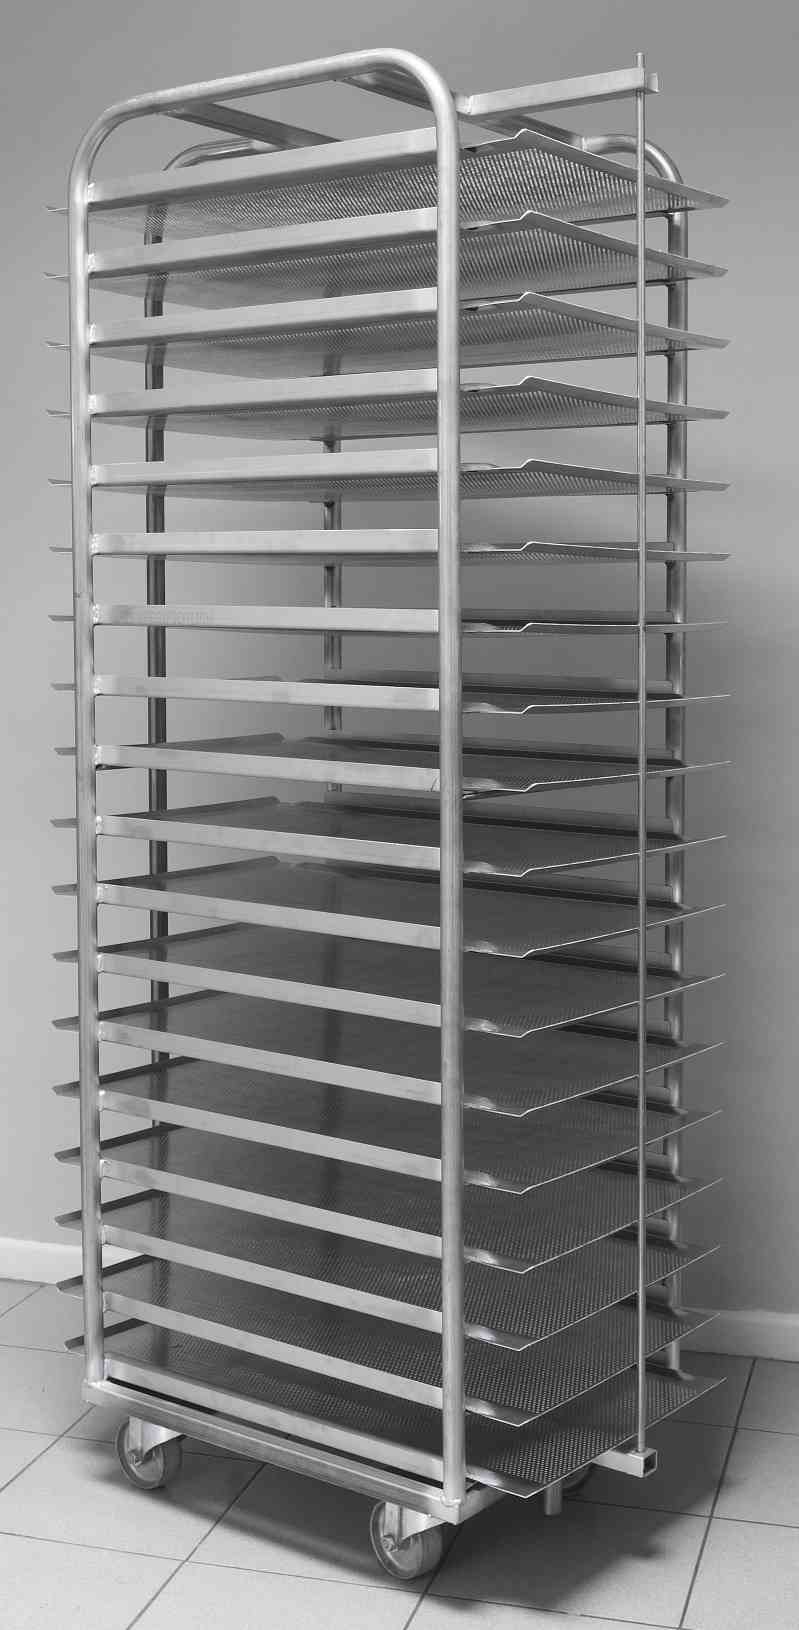 Trolley for Baking Sheets